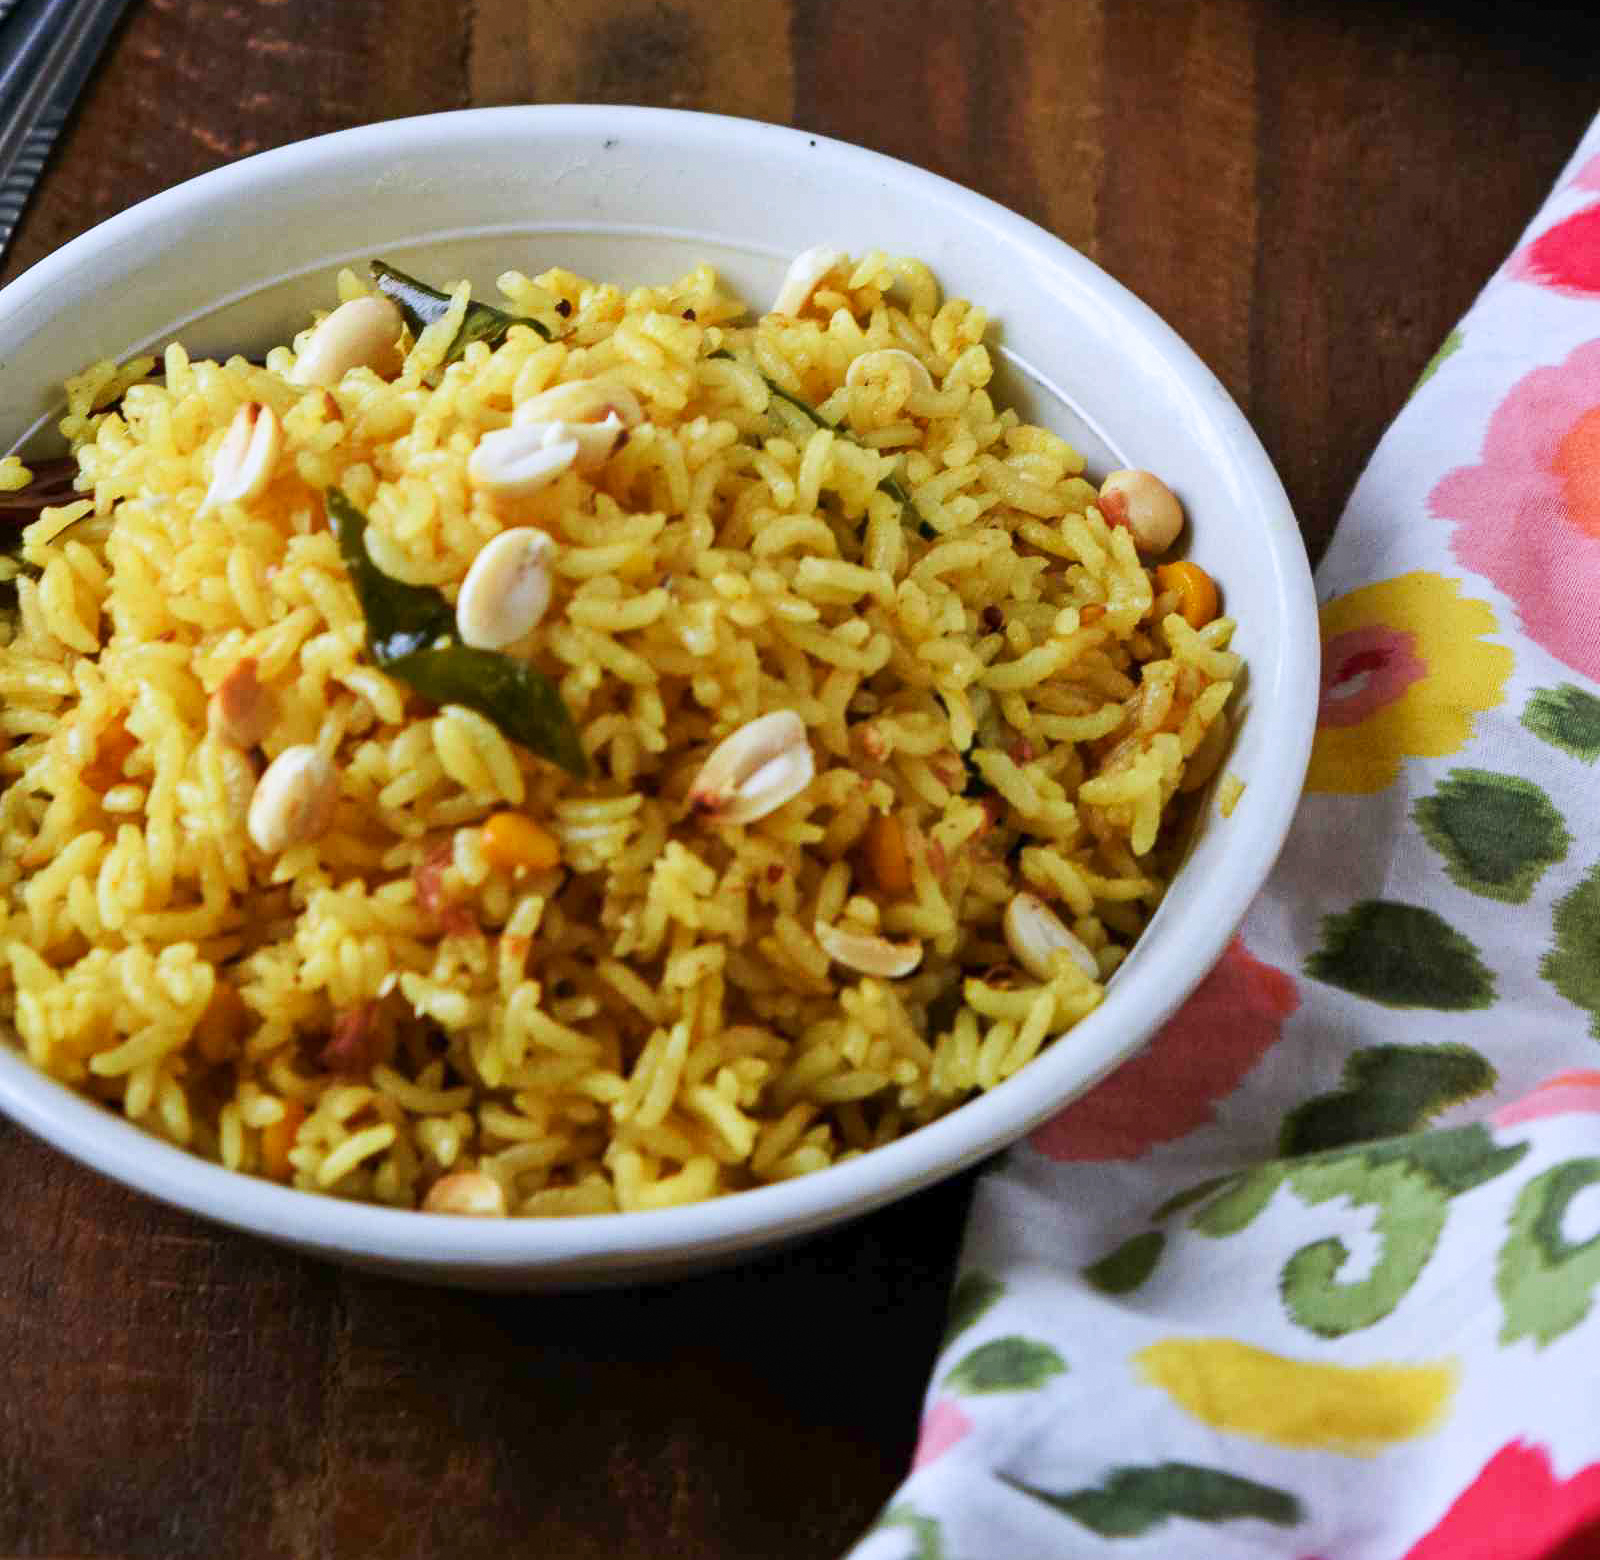 Andhra Style Pulihora Recipe (Spicy & Tangy Tamarind Rice)